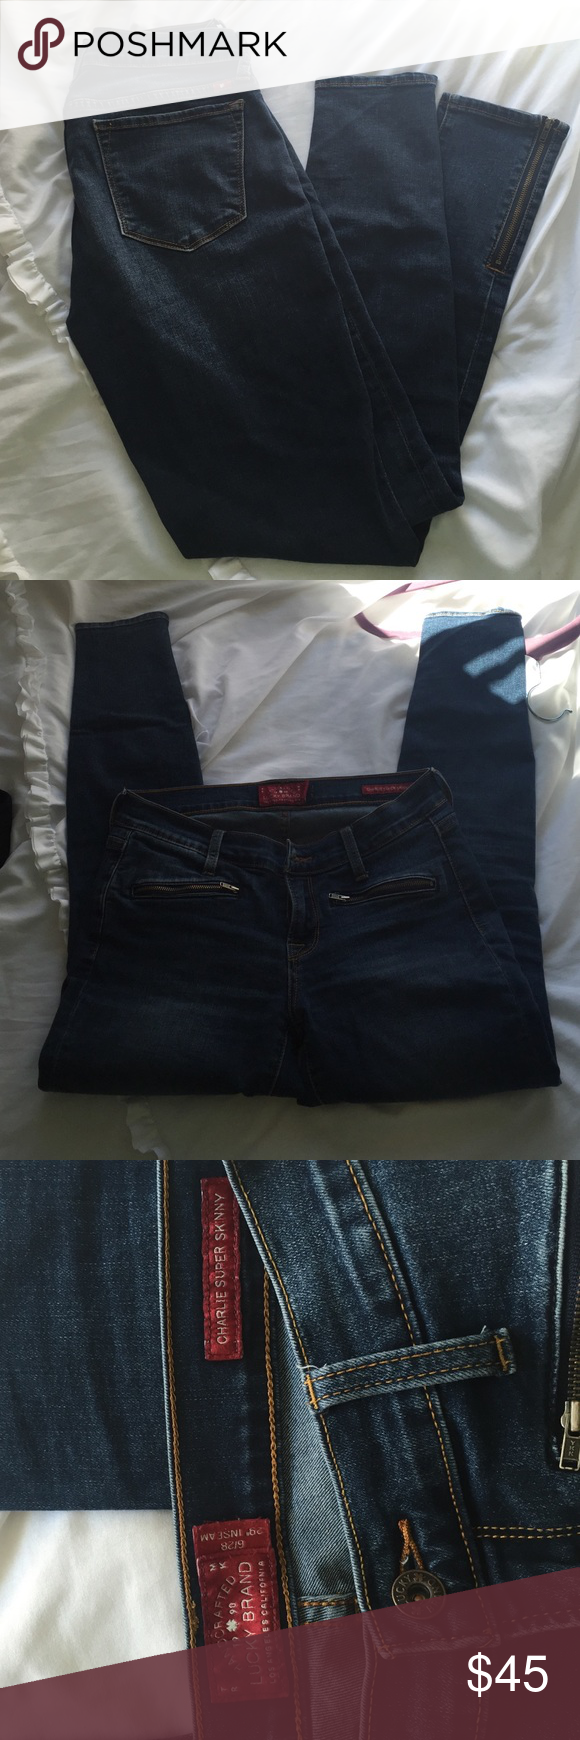 Lucky Brand Super Skinny Jeans Only worn once, like brand new Charlie Super Skinny jeans; include small zippers at bottom of legs, size 6/28 29'' inseam fit about a size 6/7 Lucky Brand Jeans Skinny